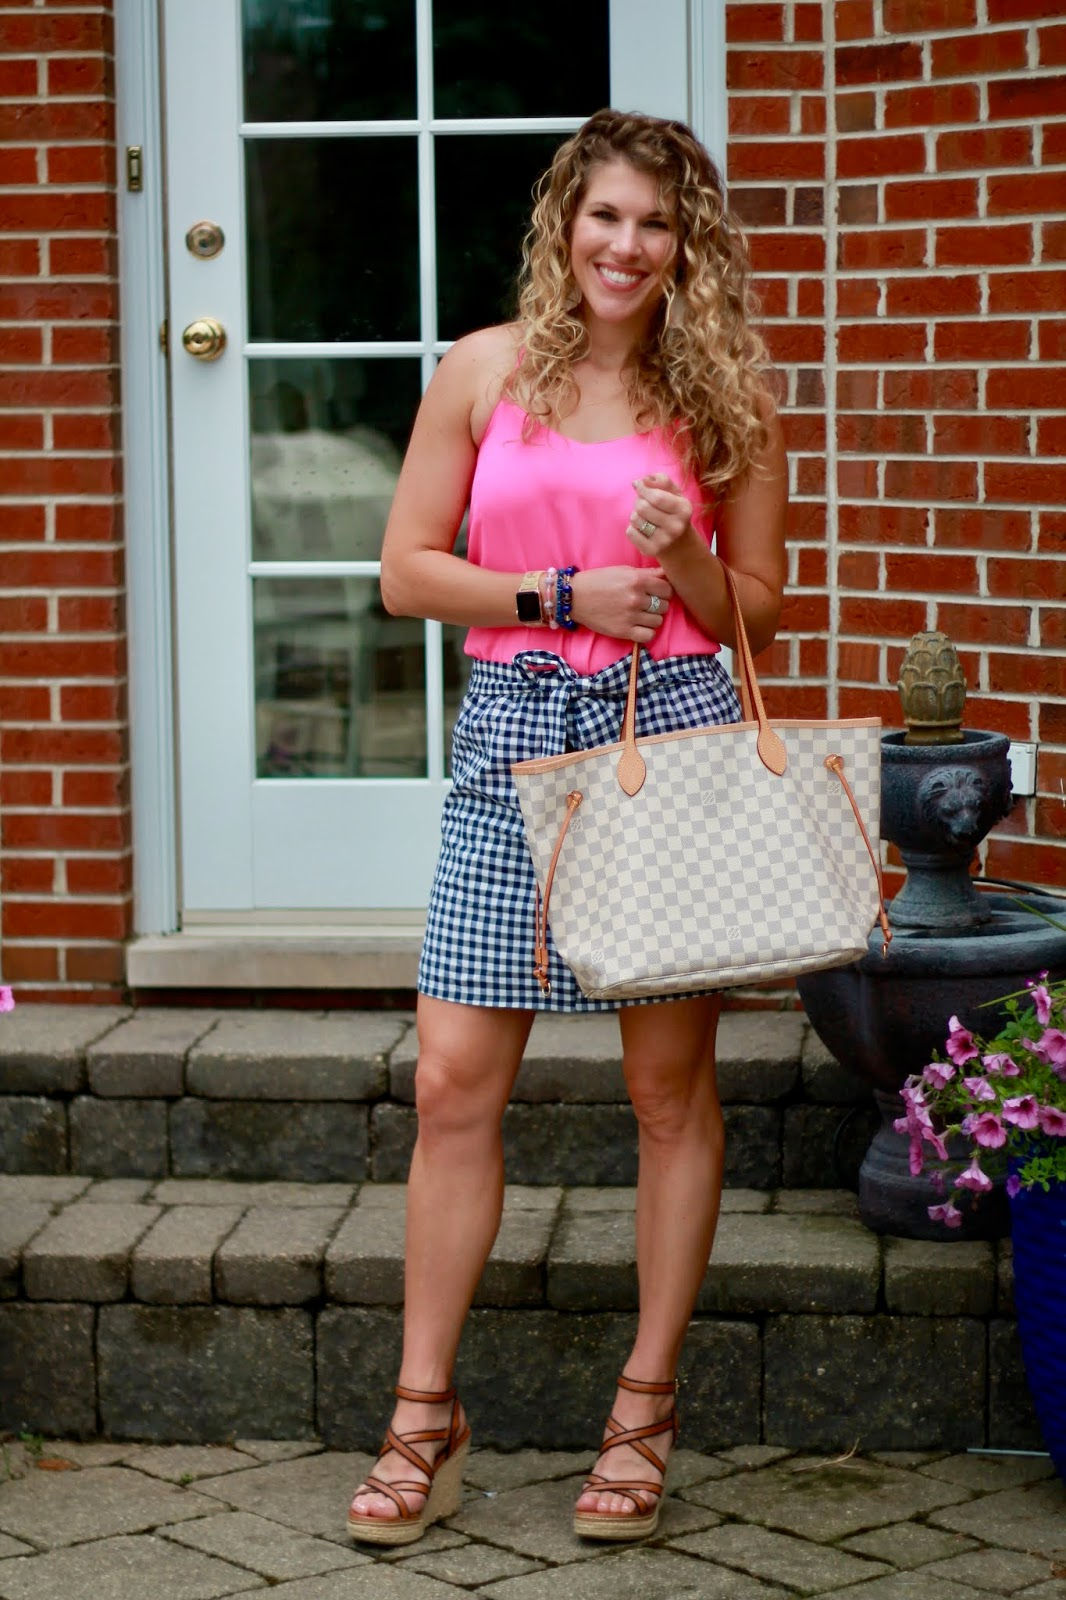 bright pink camisole, gingham skirt, summer date night outfit, cute summer outfit, summer gingham, azure LV neverfull